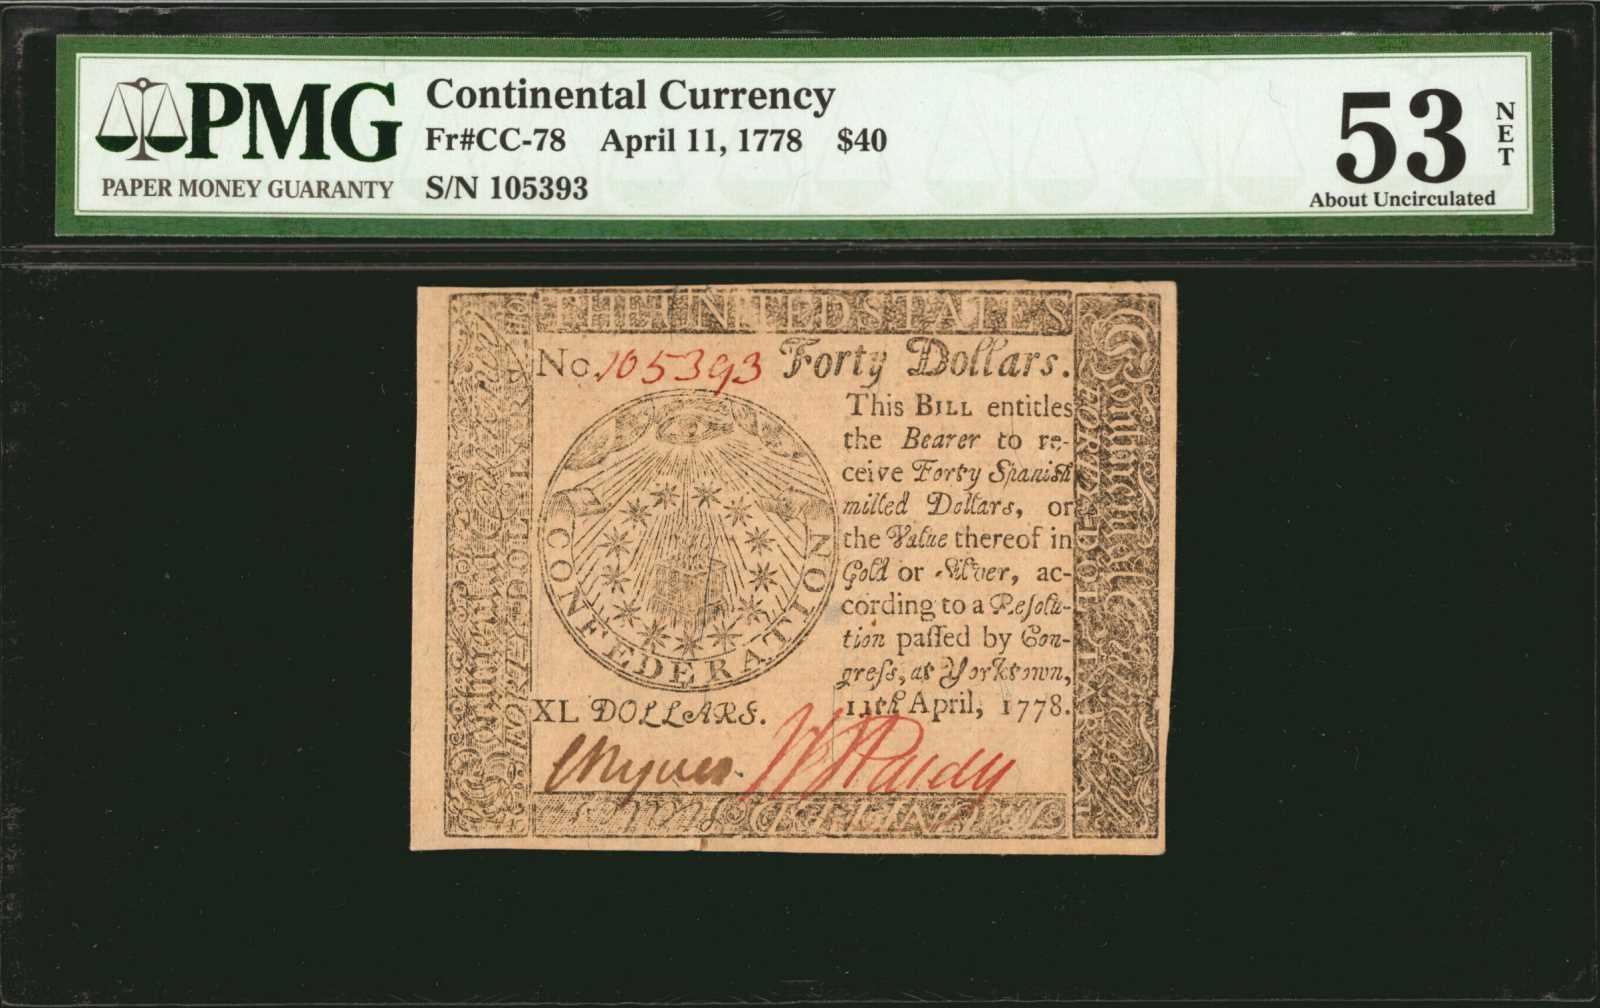 sample image for 1778 $40 CC78 Yorktown